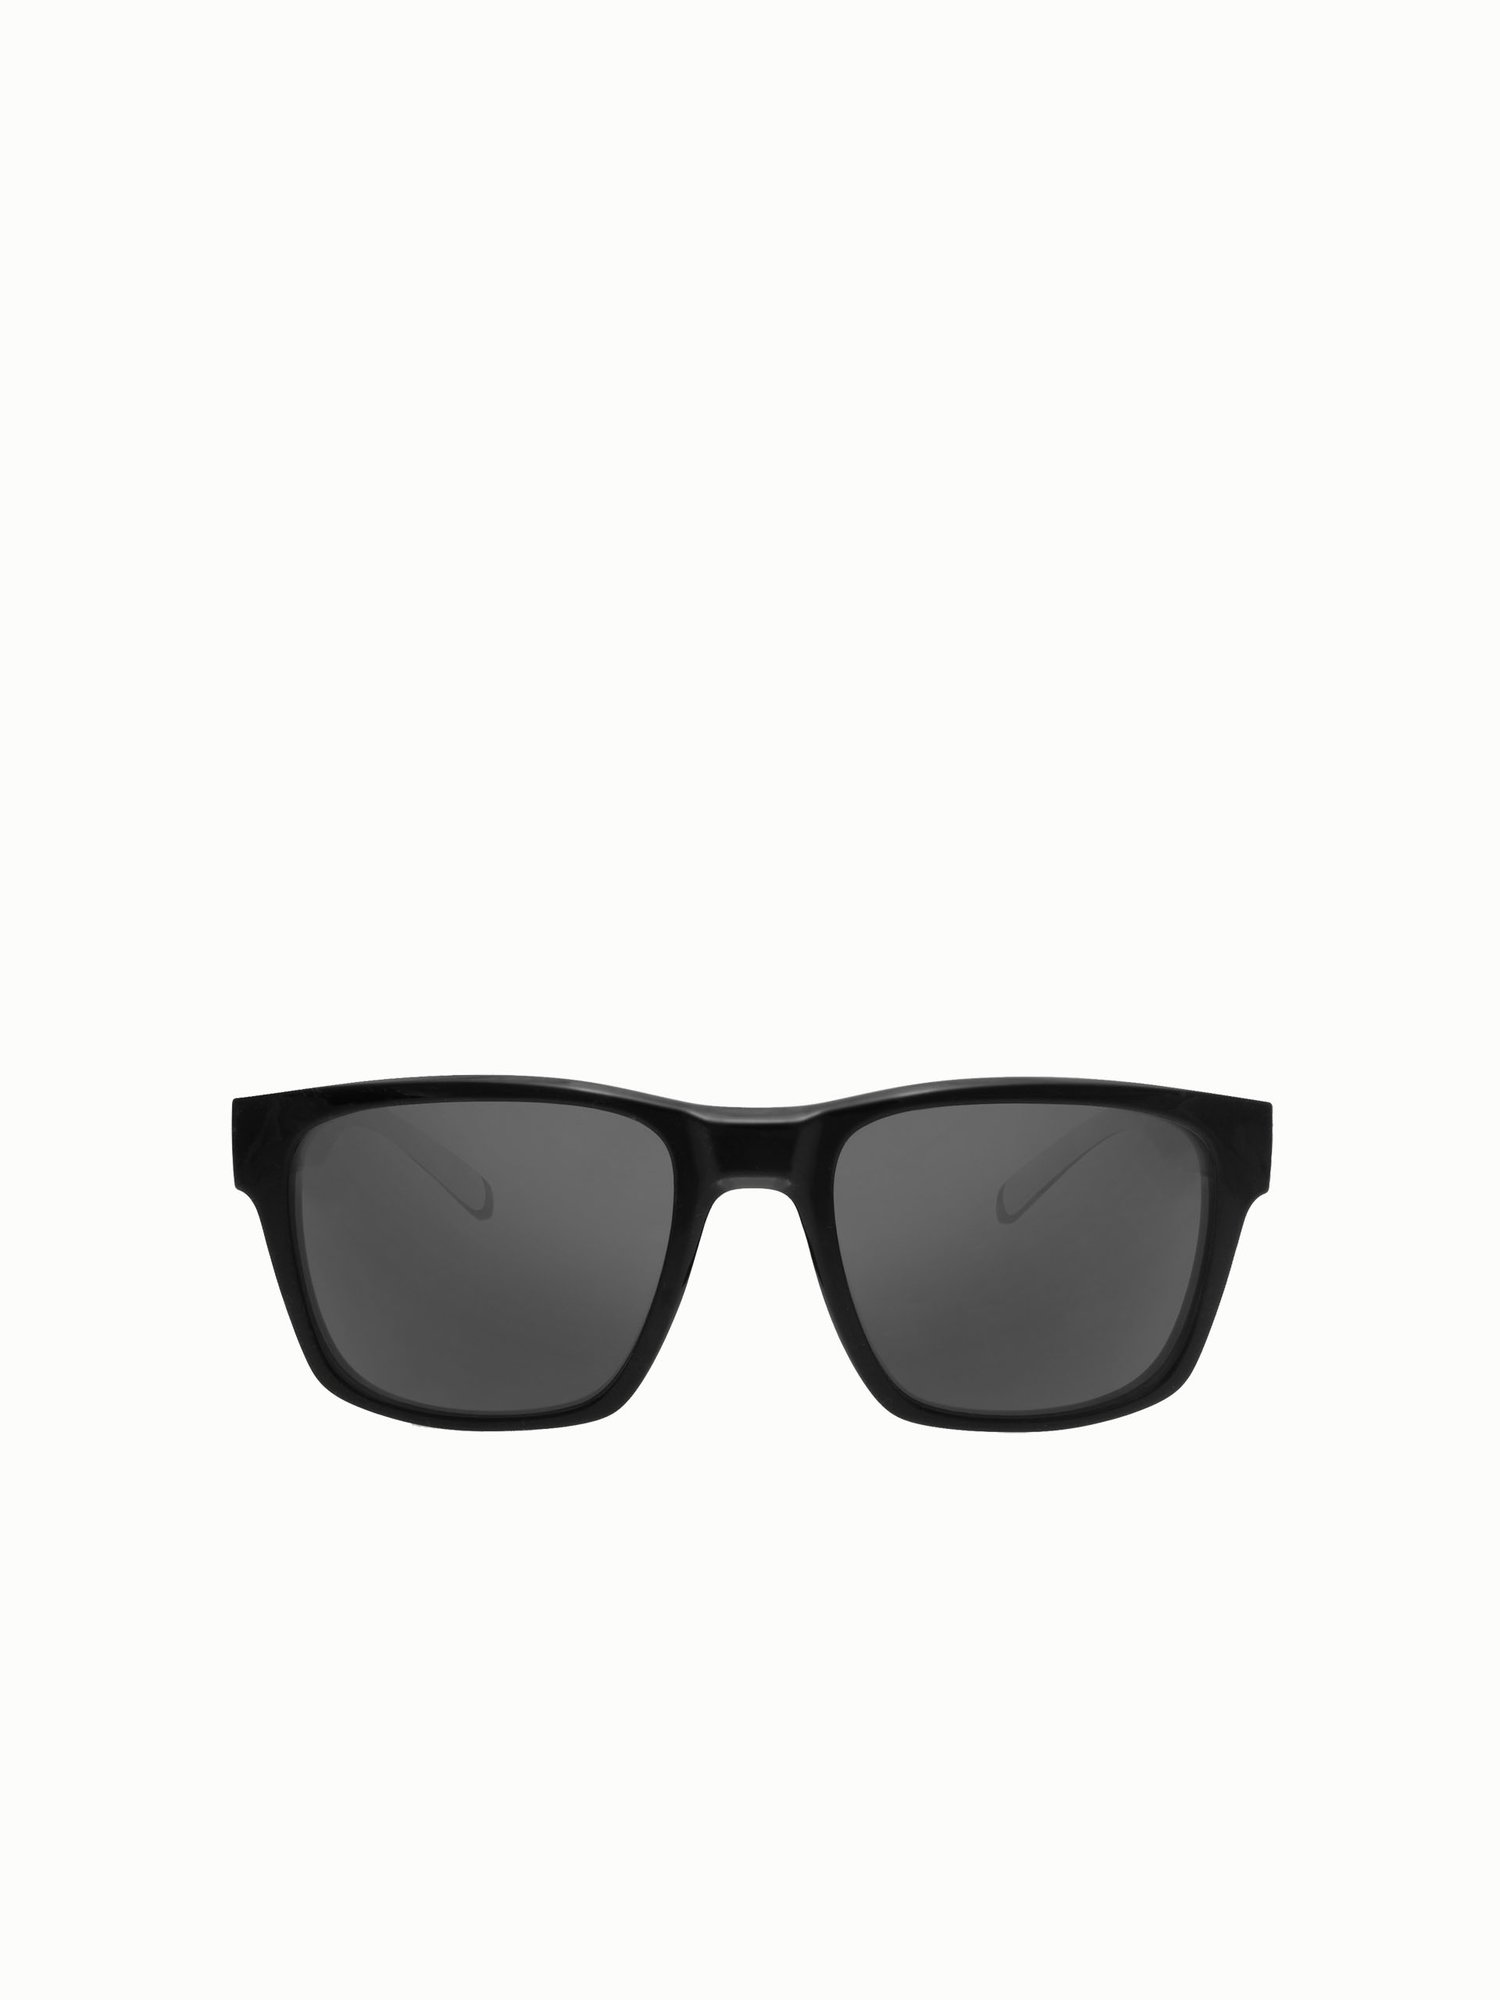 Sailing Sunglasses - Black / Light Grey / Smoke Grey